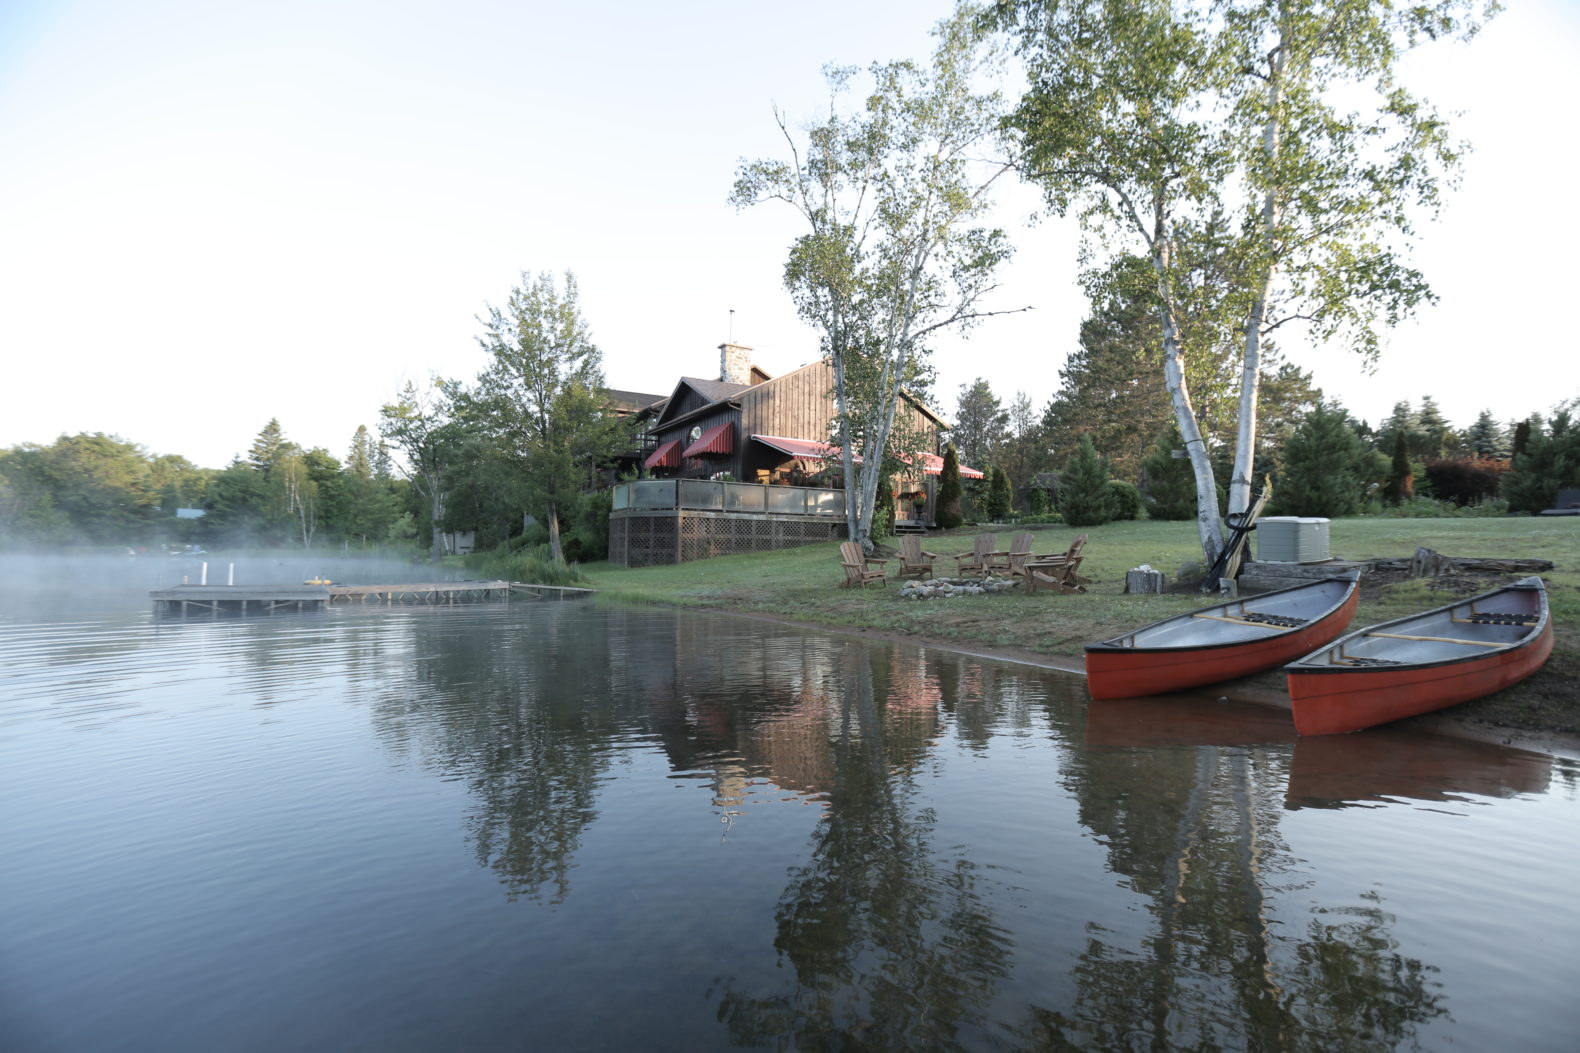 lake-canoes-sport-swimming-water-activity-grail-springs-canada-holistic-retreat